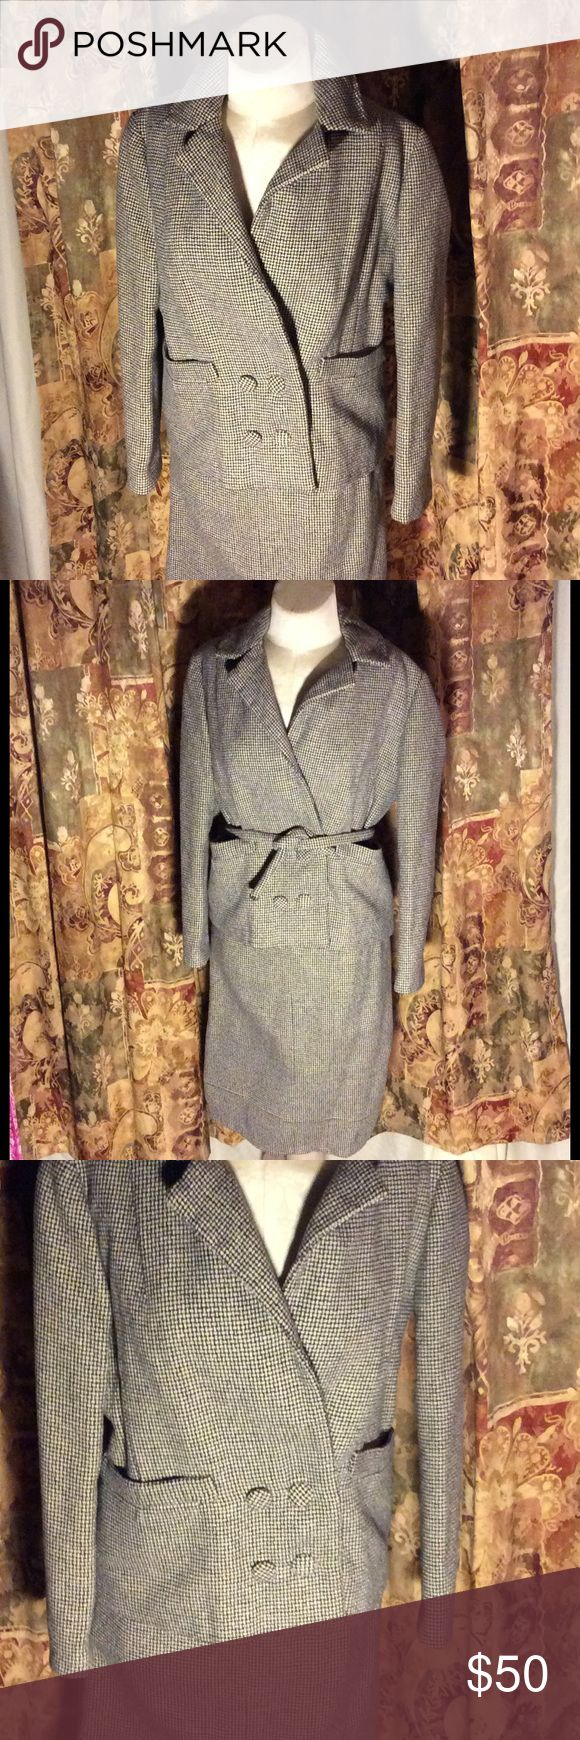 Selling this Vtg checkered wool suit great details on Poshmark! My username is: patriciamildred. #shopmycloset #poshmark #fashion #shopping #style #forsale #Vintage #Other